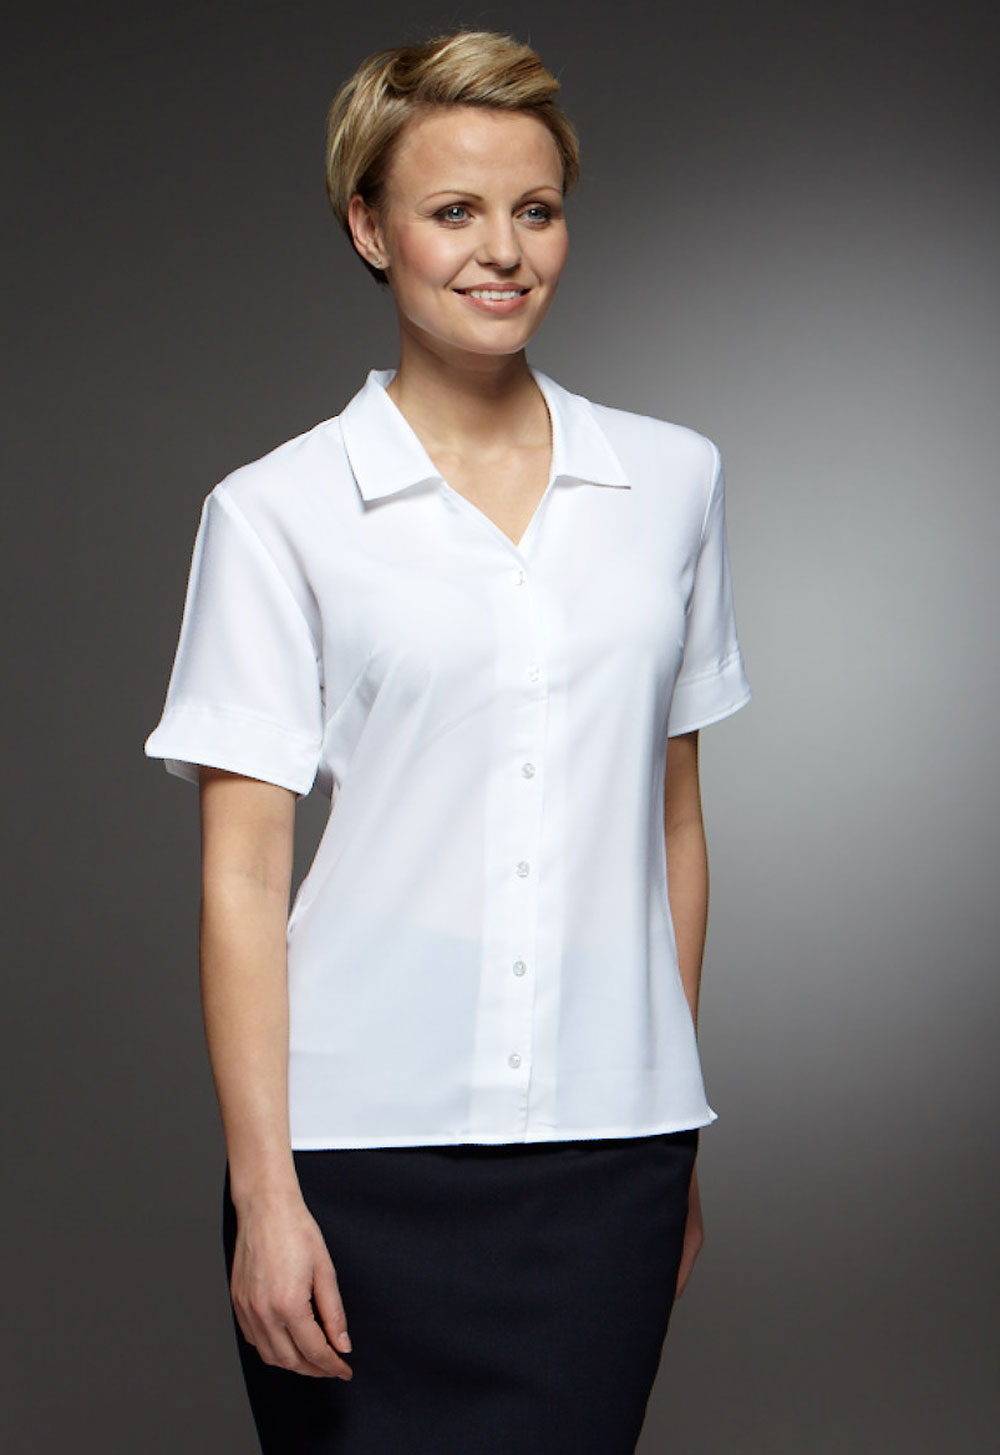 Elegant Hotel Uniform Shirts And Dress Shirts For Men And Women